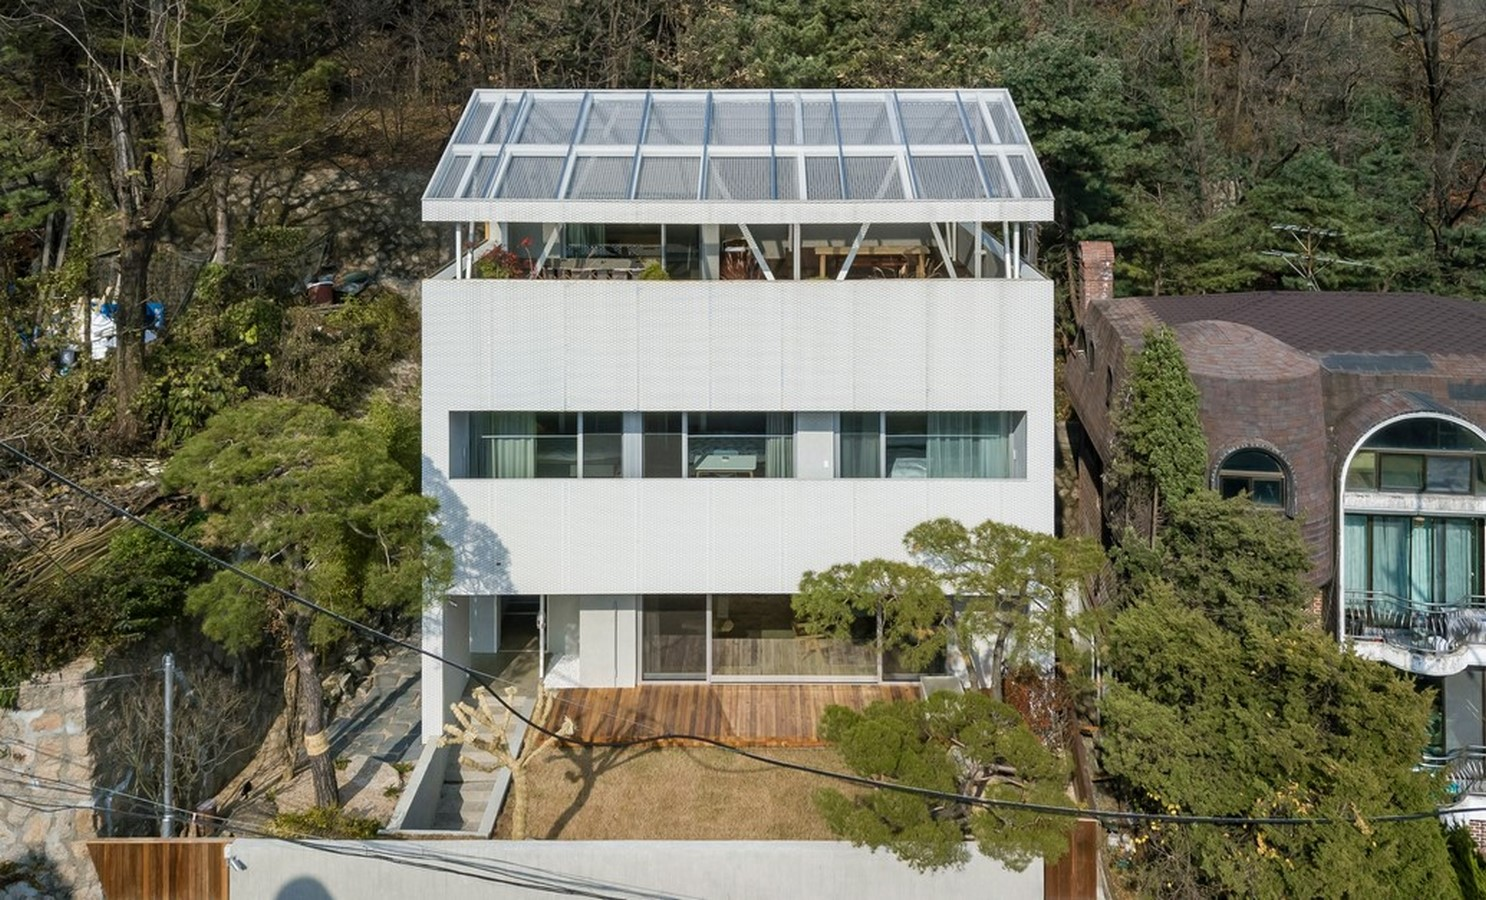 50 Examples of Modern concrete homes - Sheet10